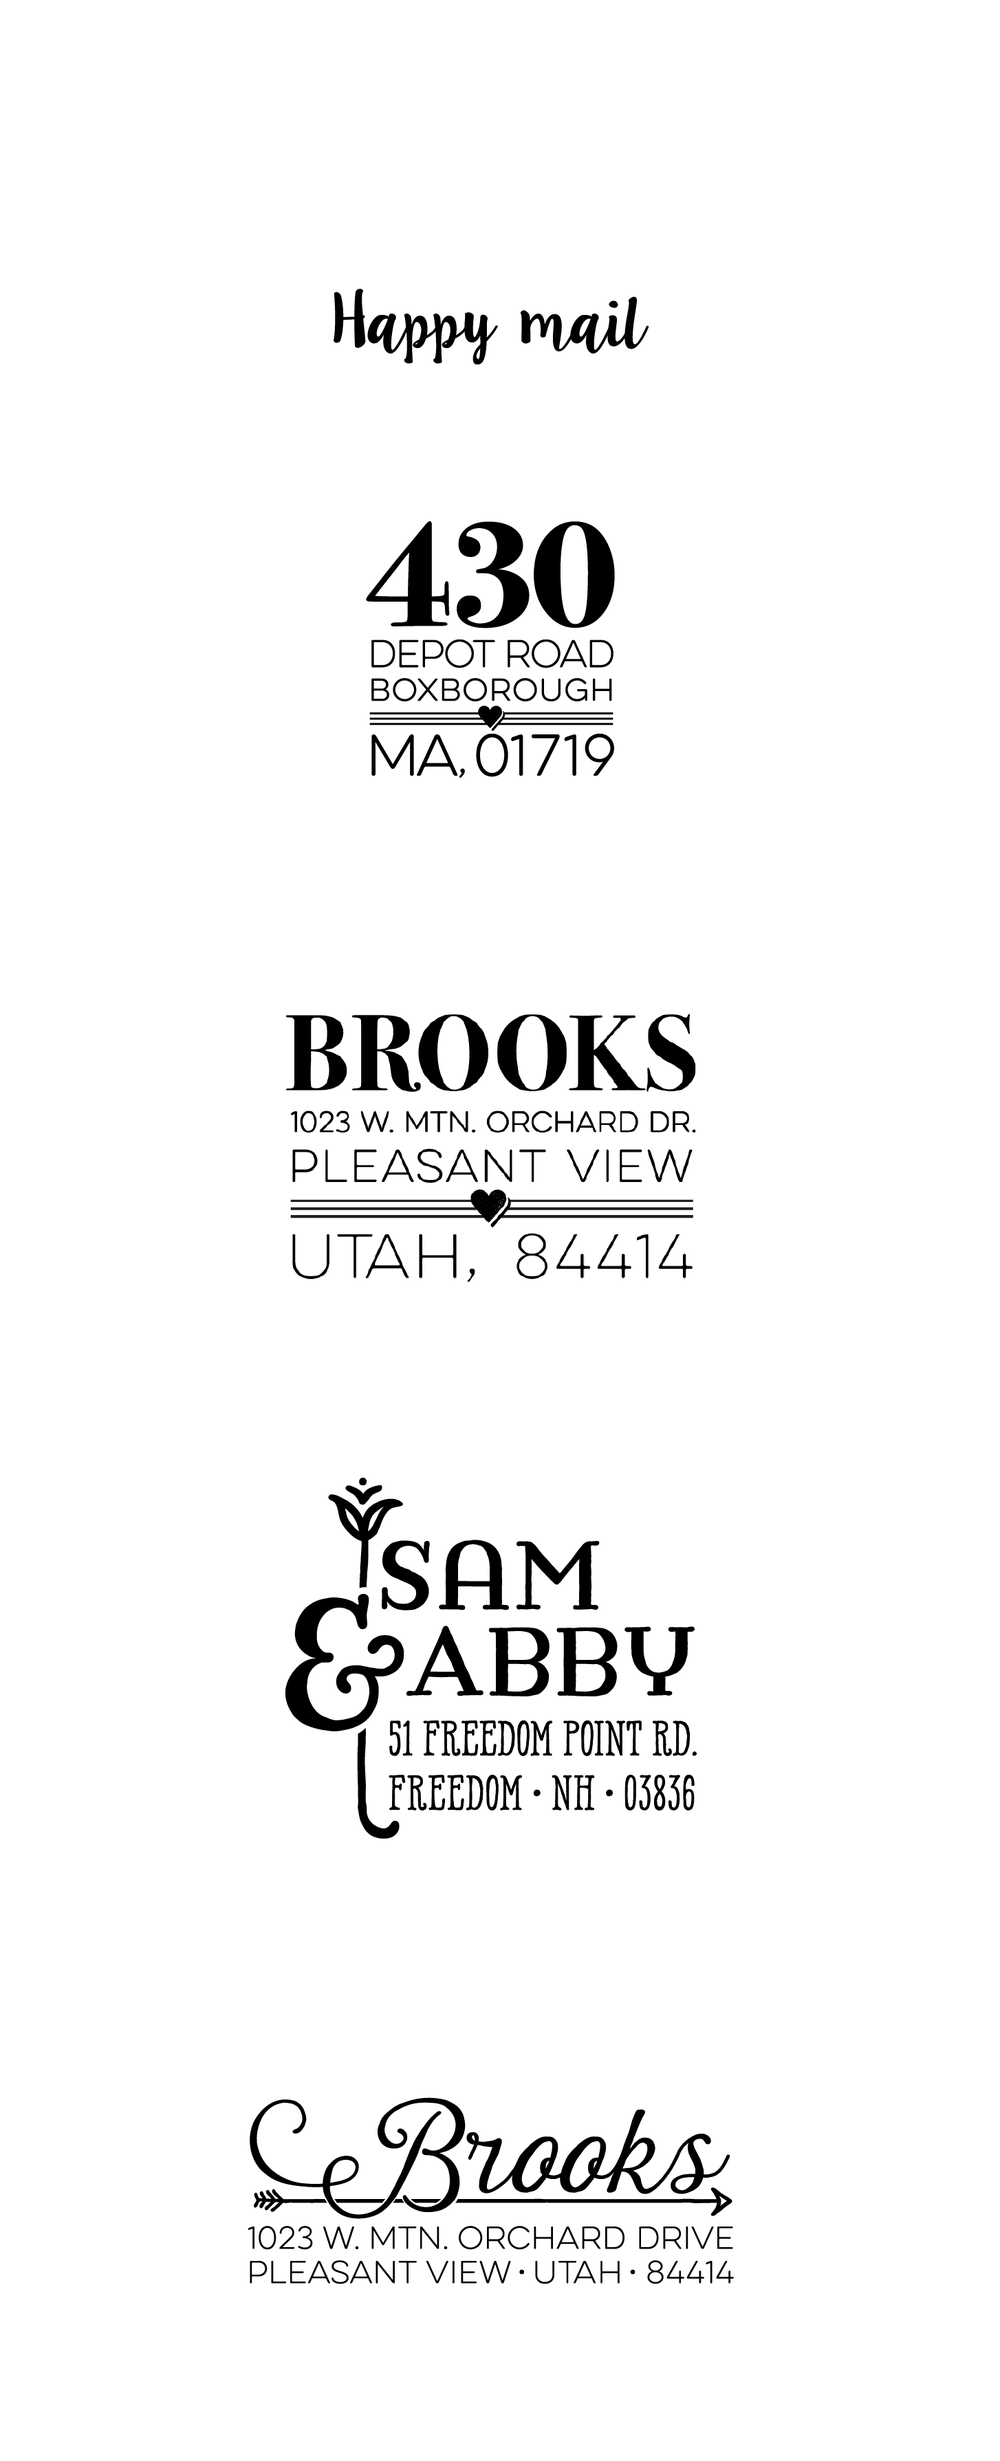 Address stamp designs